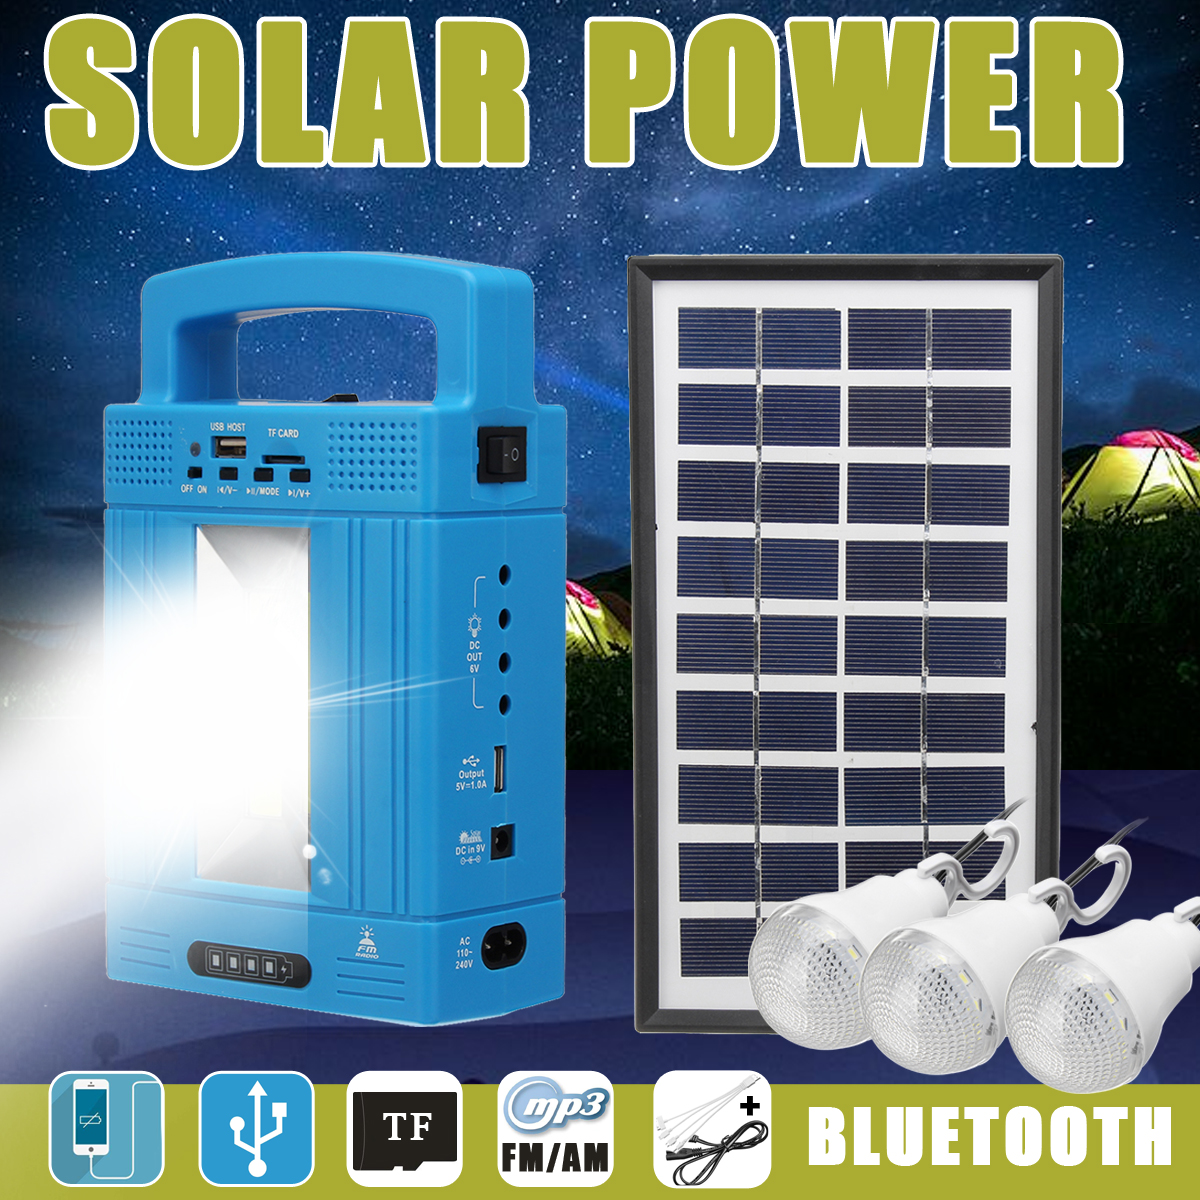 Portable Solar Powered Panel Lighting System Generator Storage Ourdoor Indoor Home Emergency USB Charging/Lamp Bulb/Radio/FM/MP3 portable dc solar panel charging generator power supply board charger radio mp3 flashlight mobile led lighting system outdoor